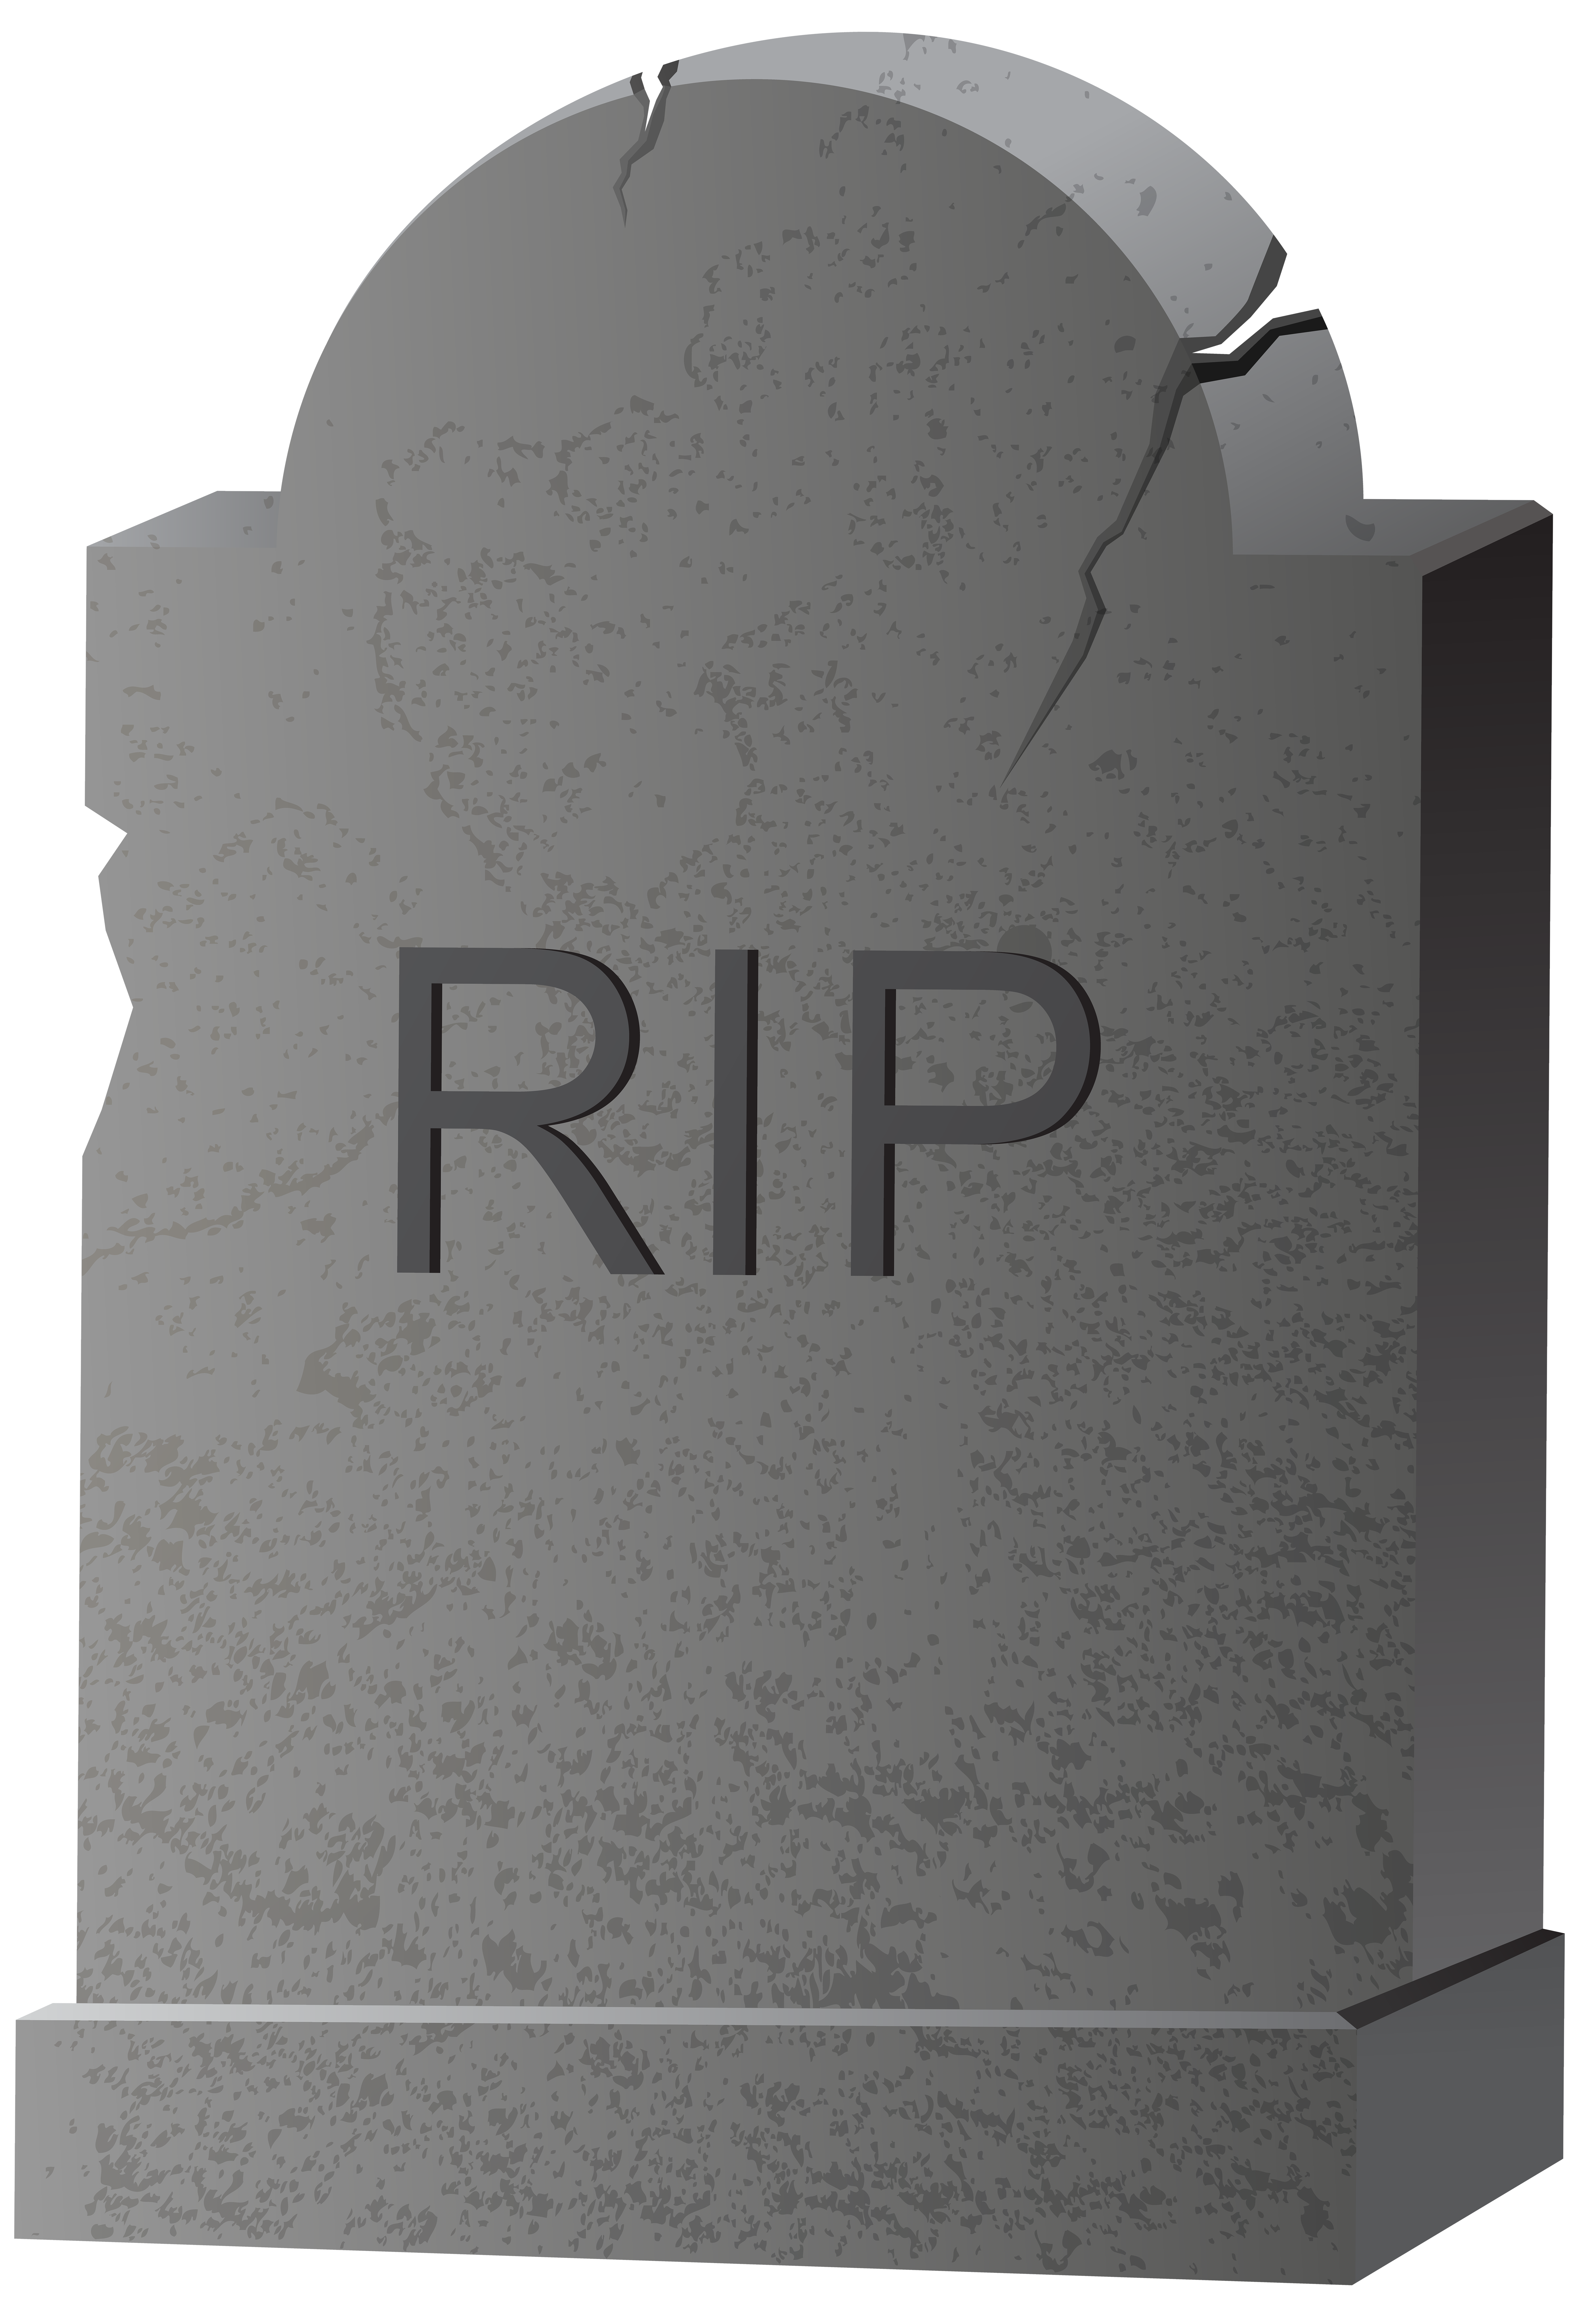 png royalty free stock Png clip art image. Tombstone clipart